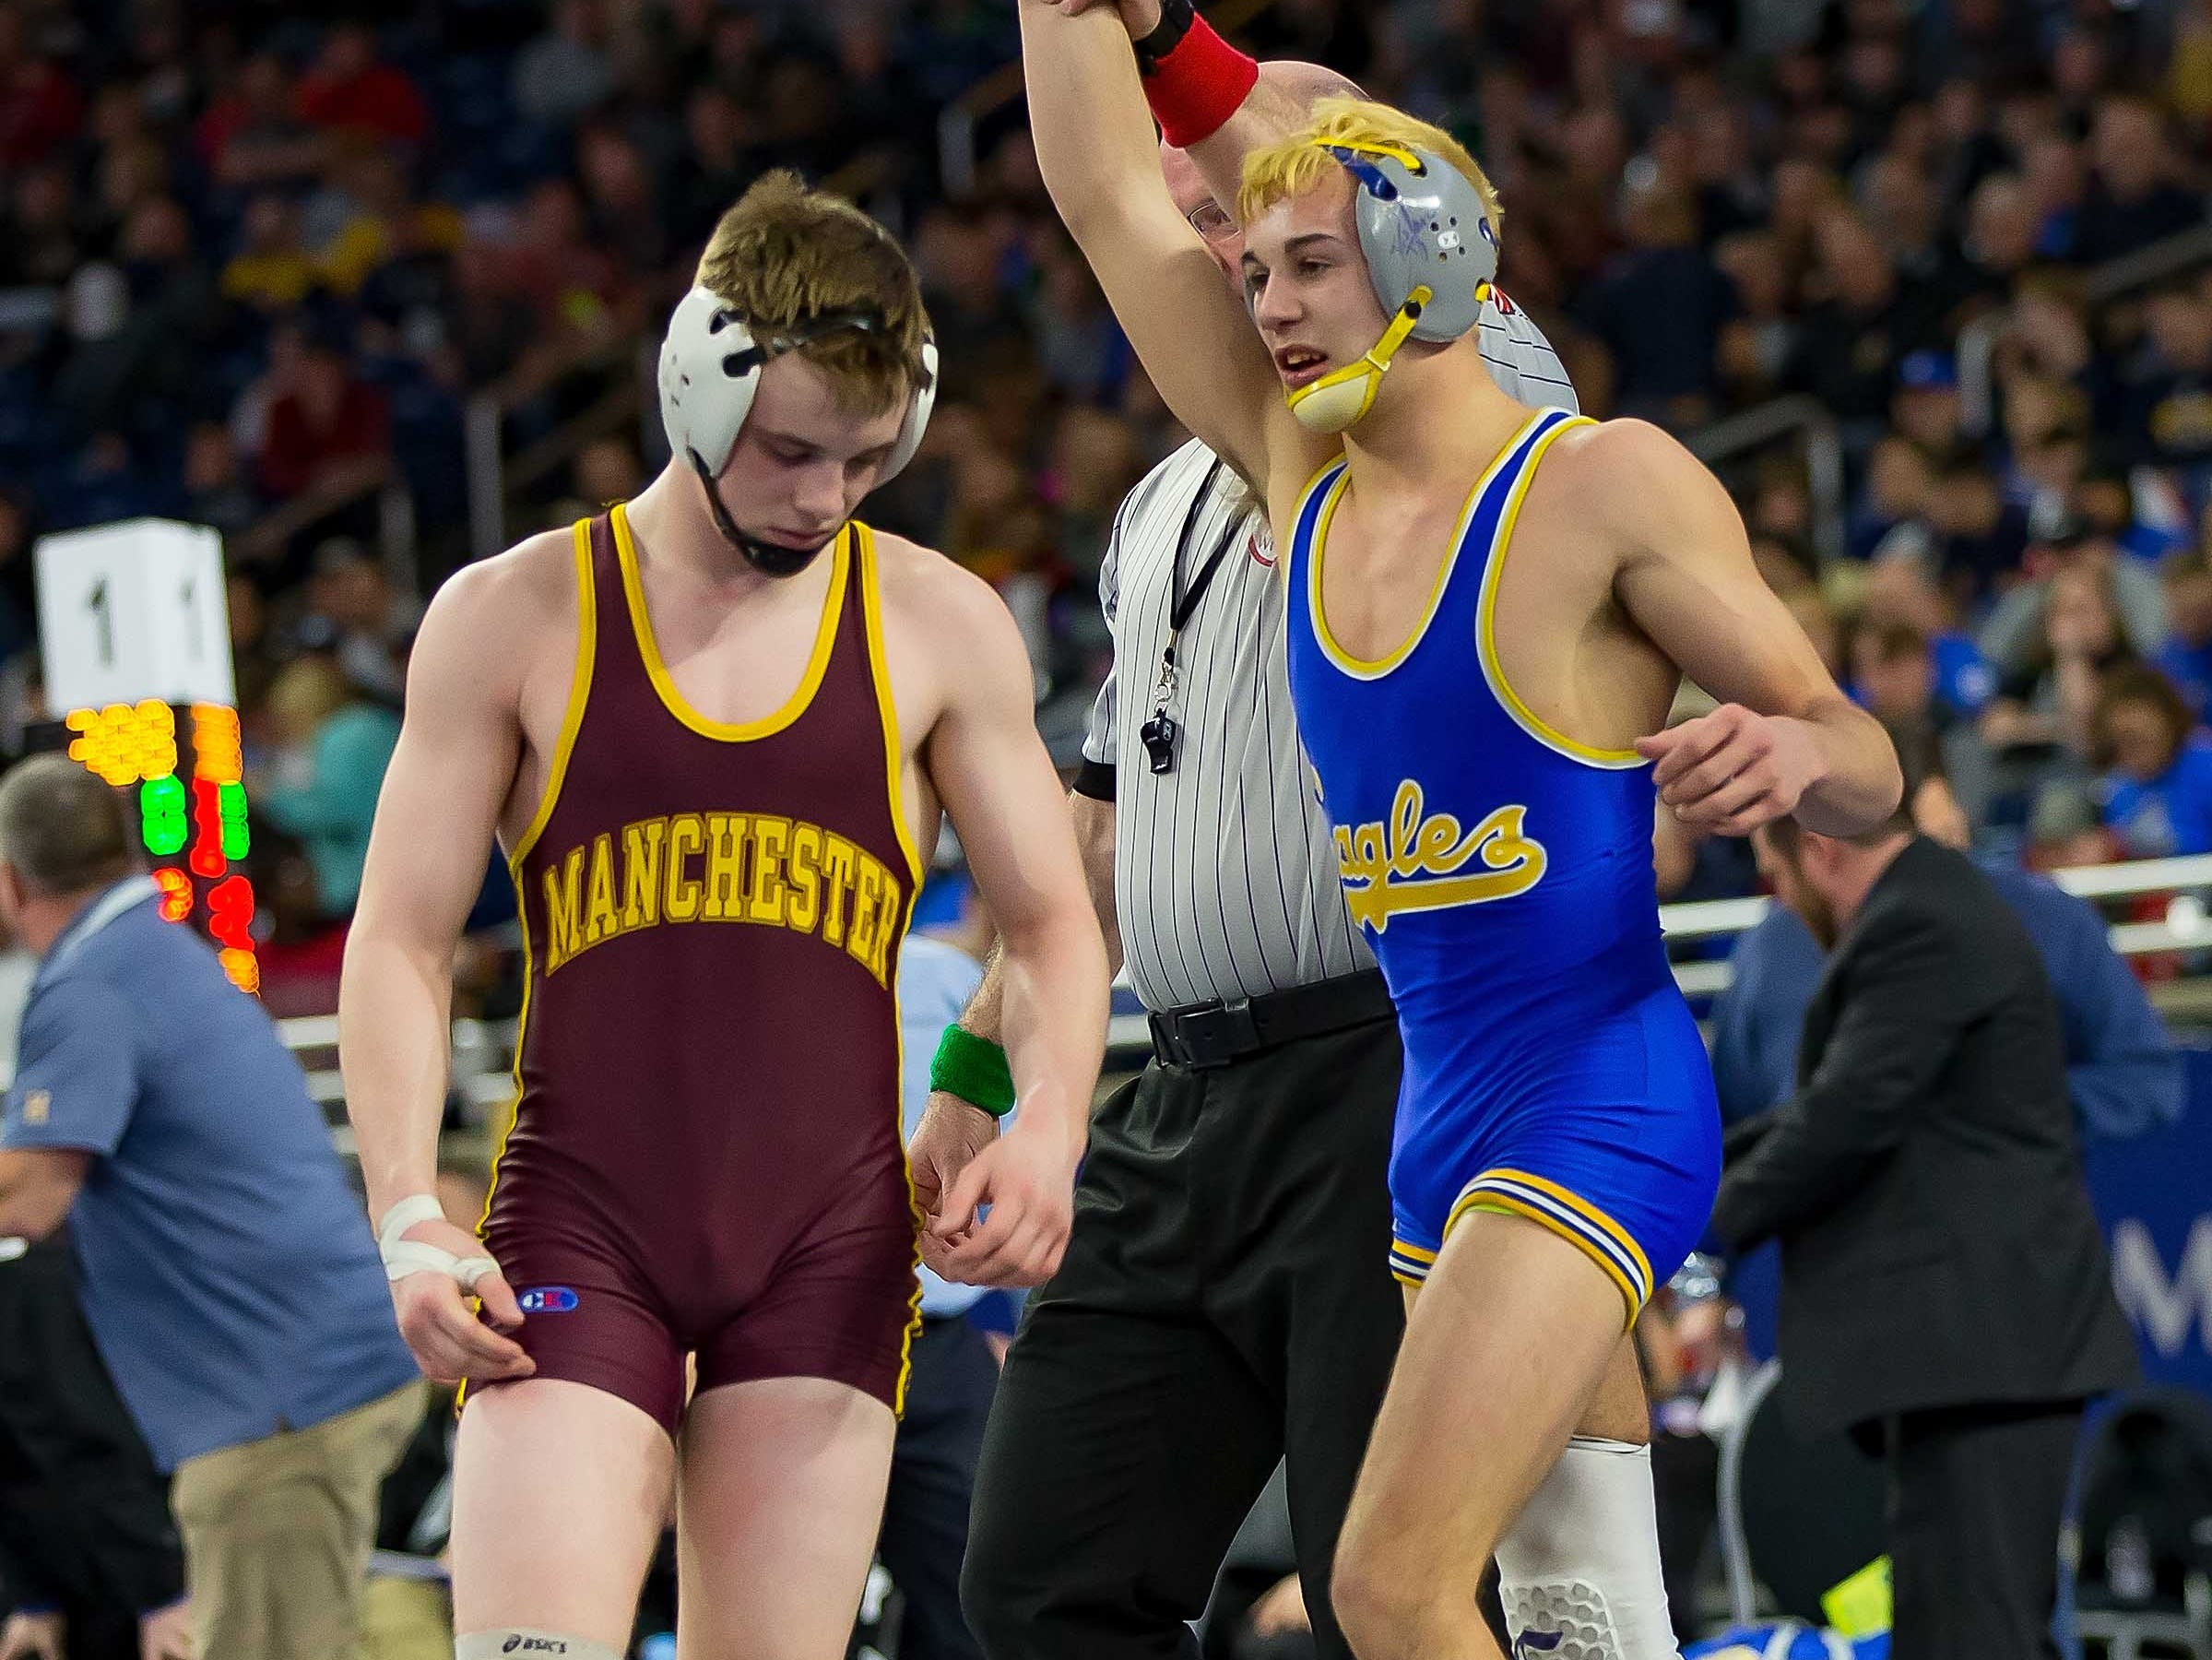 Jamison Ward of Carson City-Crystal defeated Jacob Shelby of Manchester during their 130-pound Division 4 championship match.